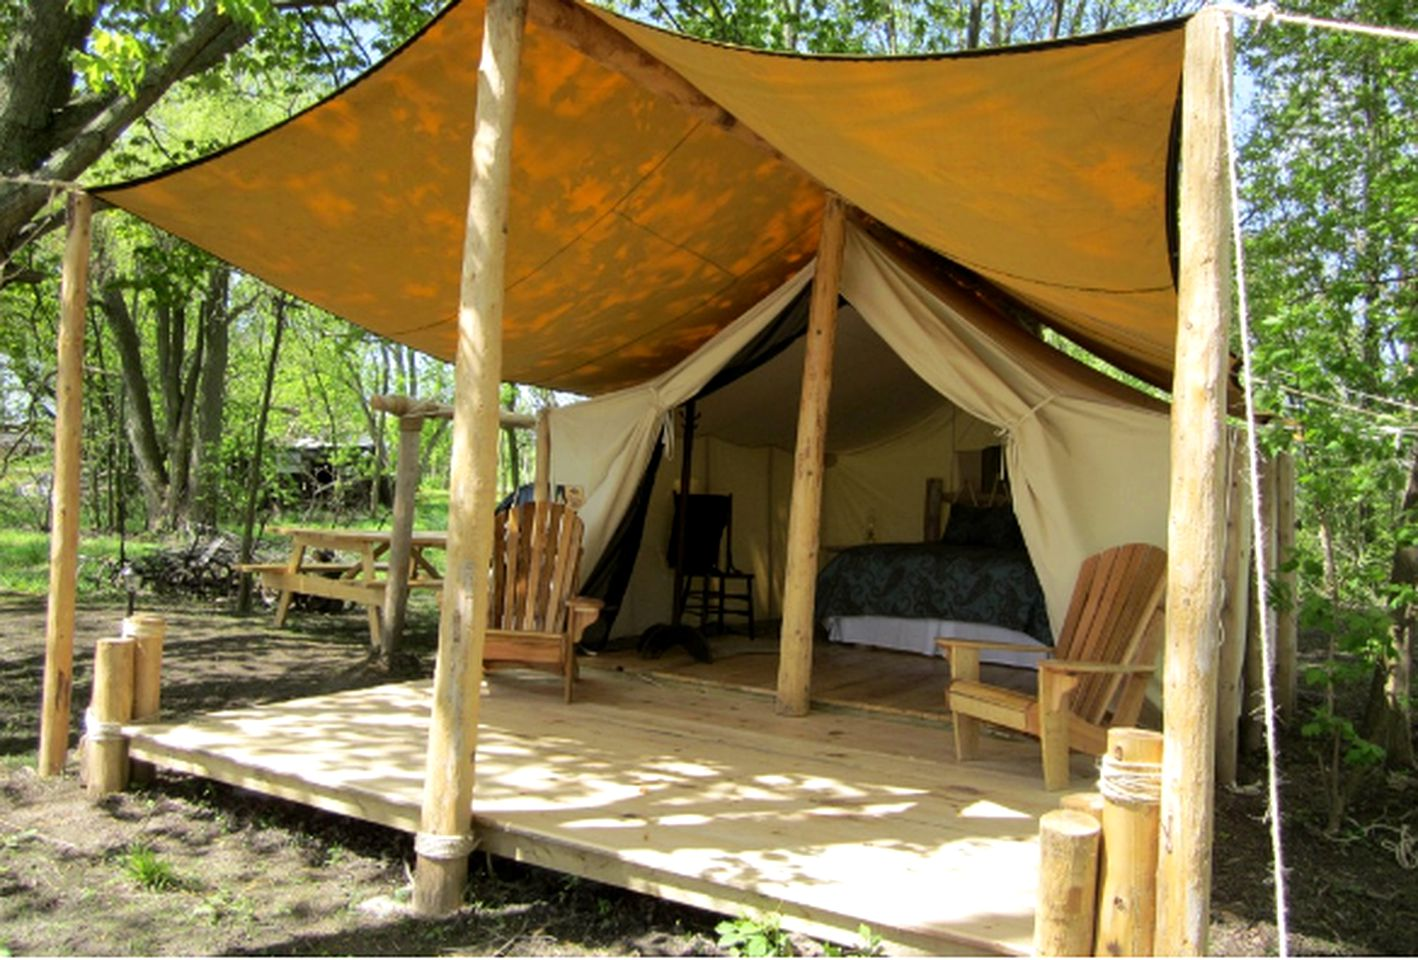 Ontario safari tent for a glamping vacation in Canada.